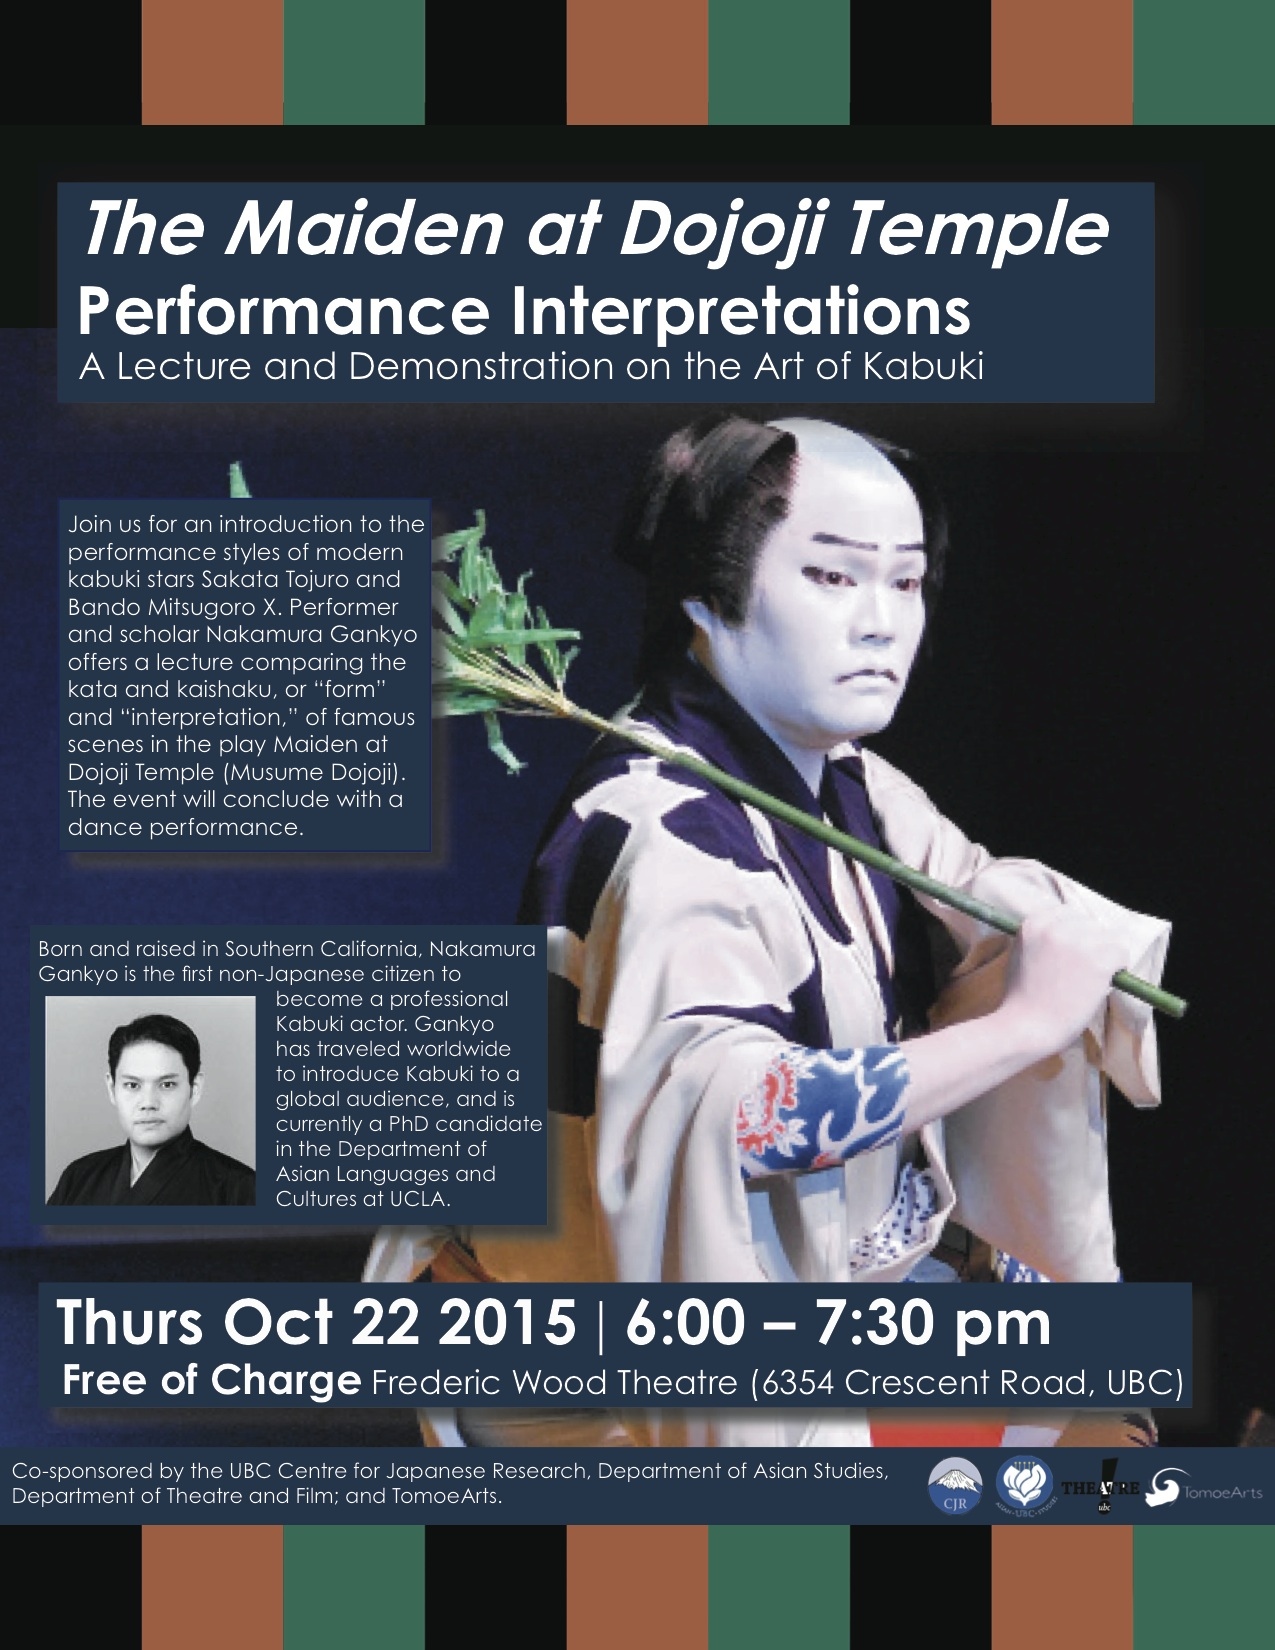 The Maiden at Dojoji Temple Poster